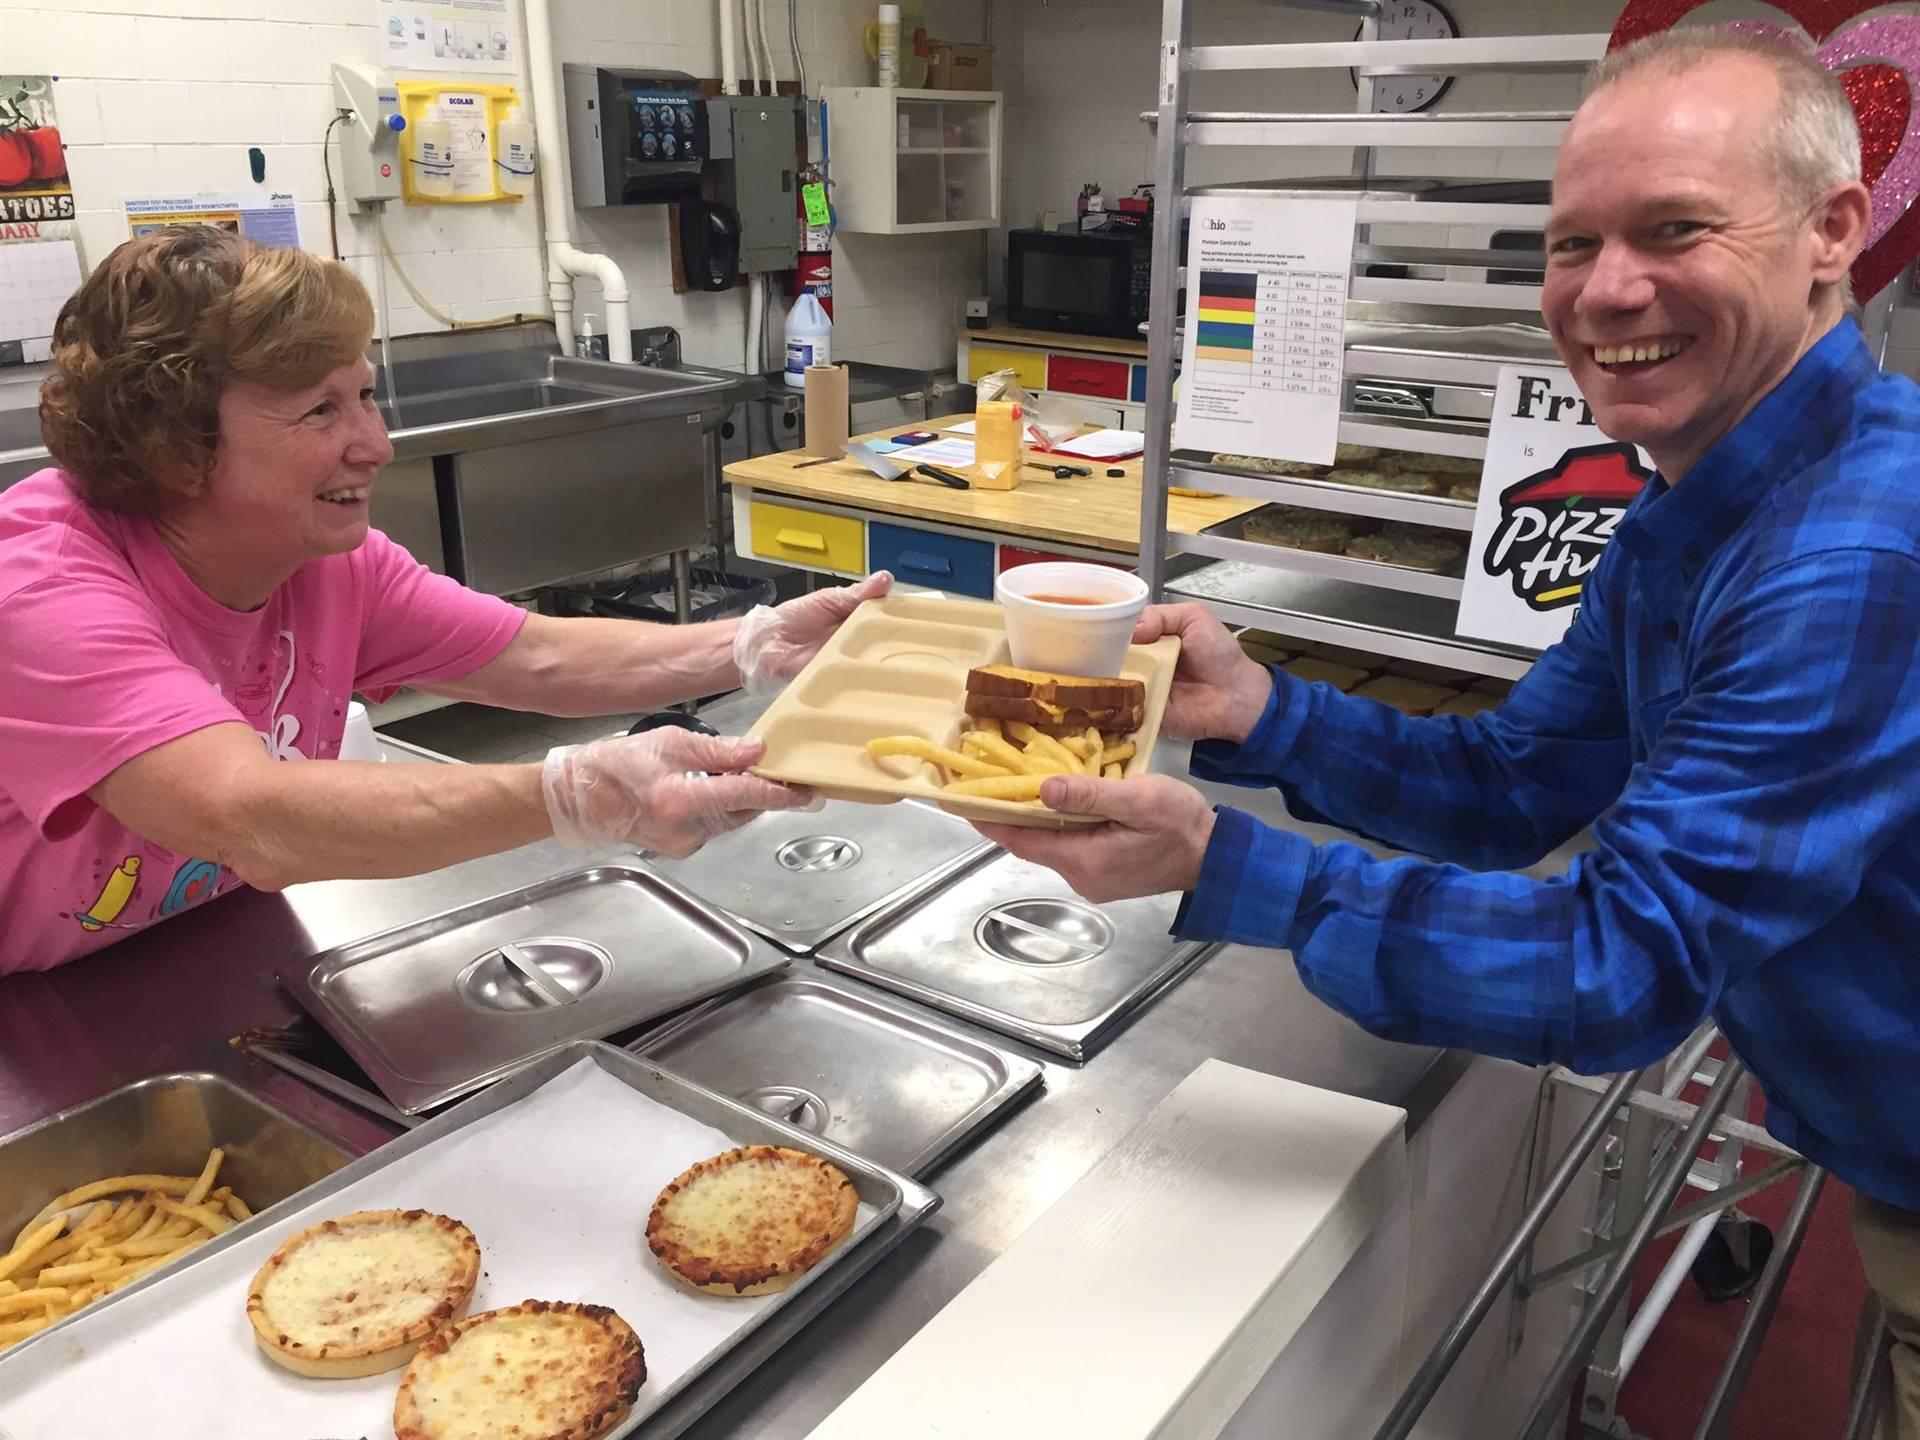 Food Services Staff Member Mrs. Peine serving lunch on a tray to Mr. Mullaly